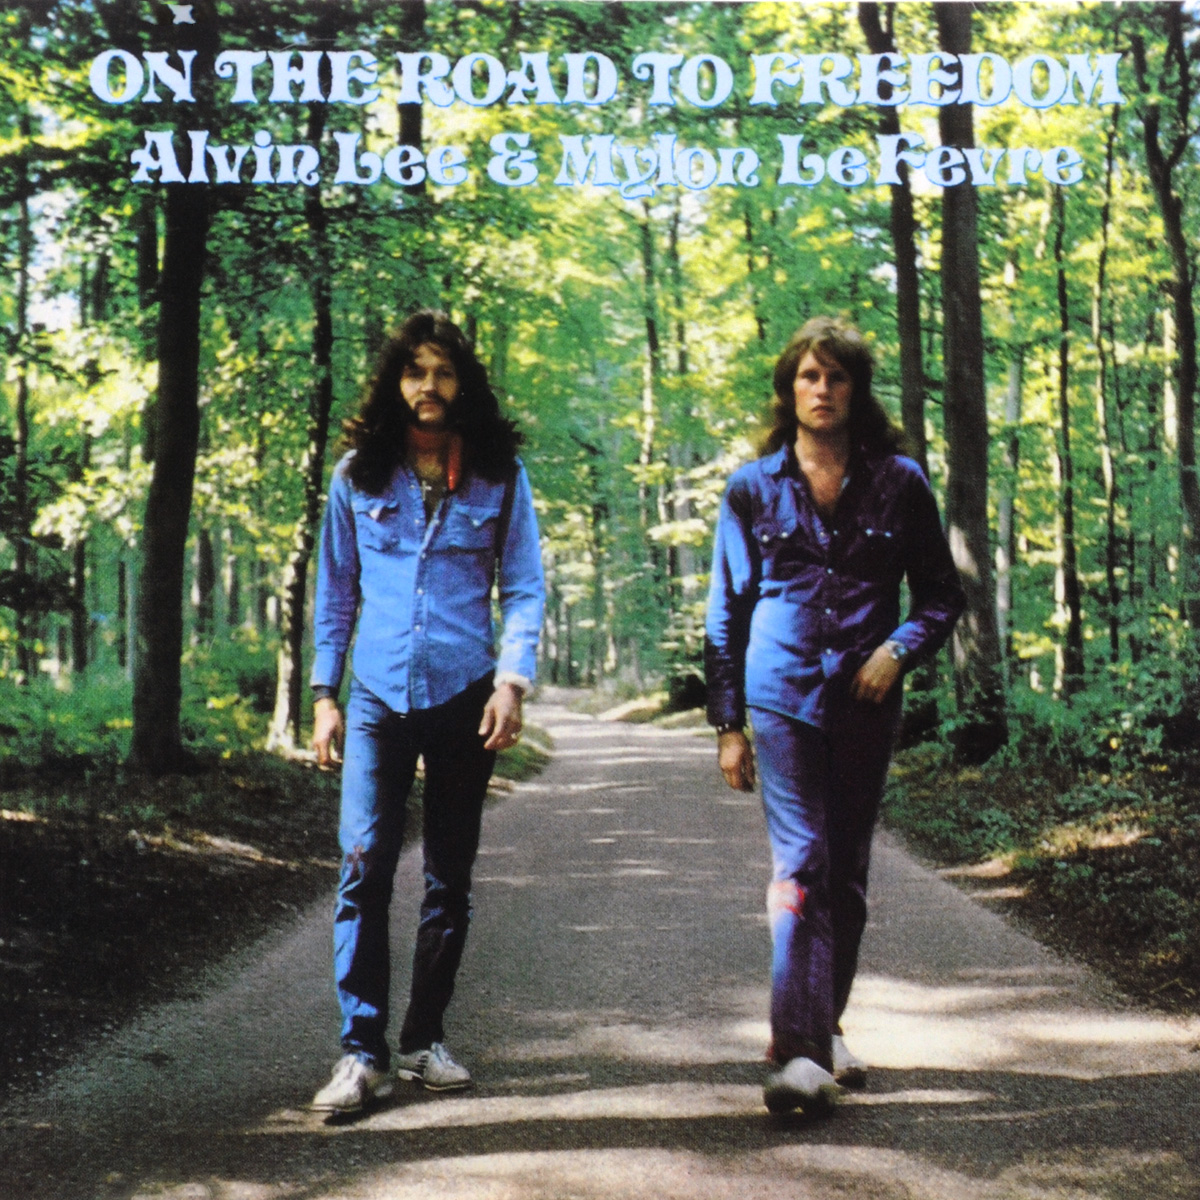 Alvin Lee & Mylon LeFevre. On The Road To Freedom